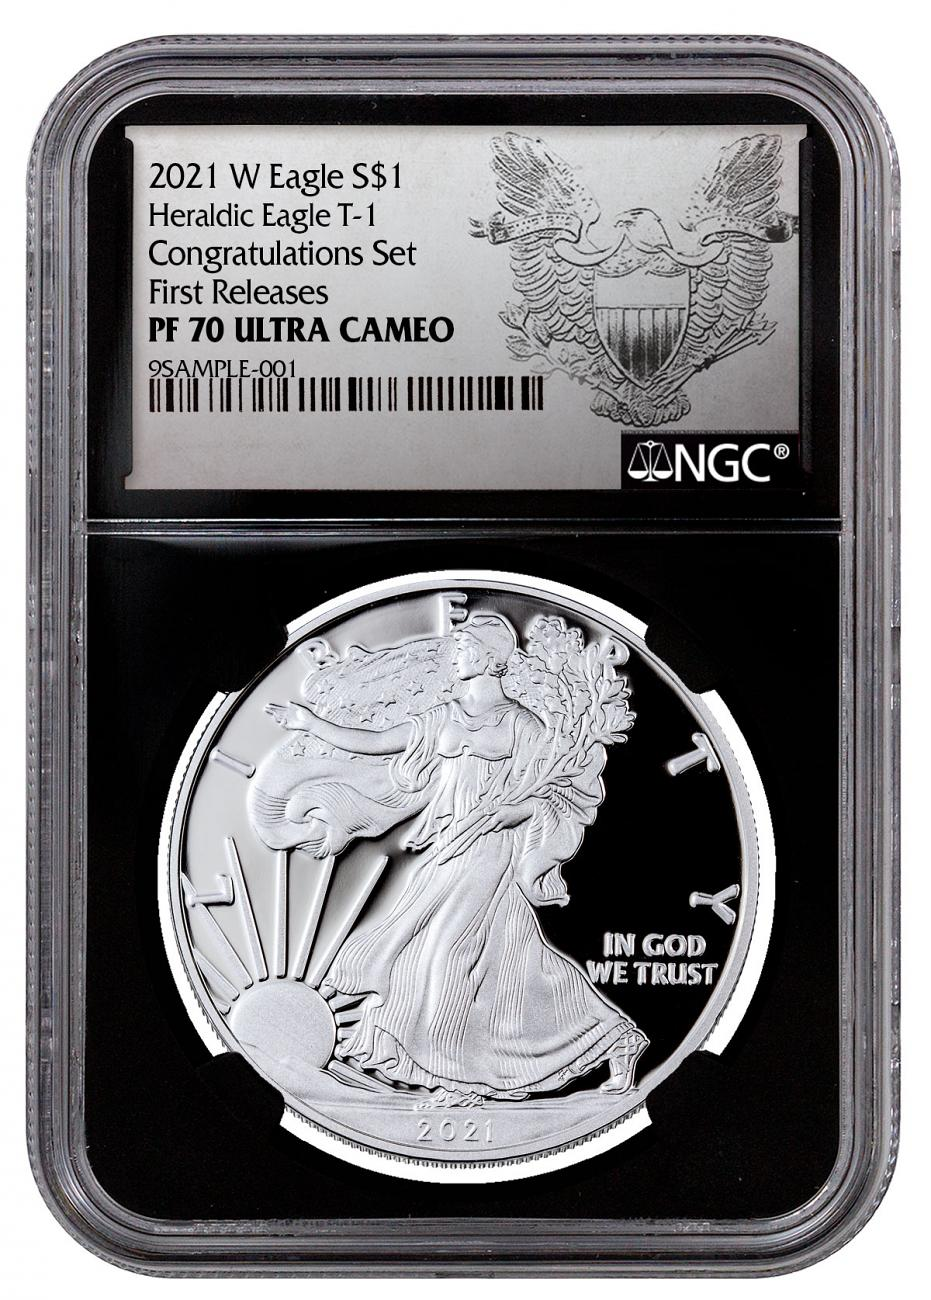 2021-W Proof American Silver Eagle Type 1 Congratulations Set NGC PF70 UC FR Black Core Holder Exclusive Heraldic Eagle Label